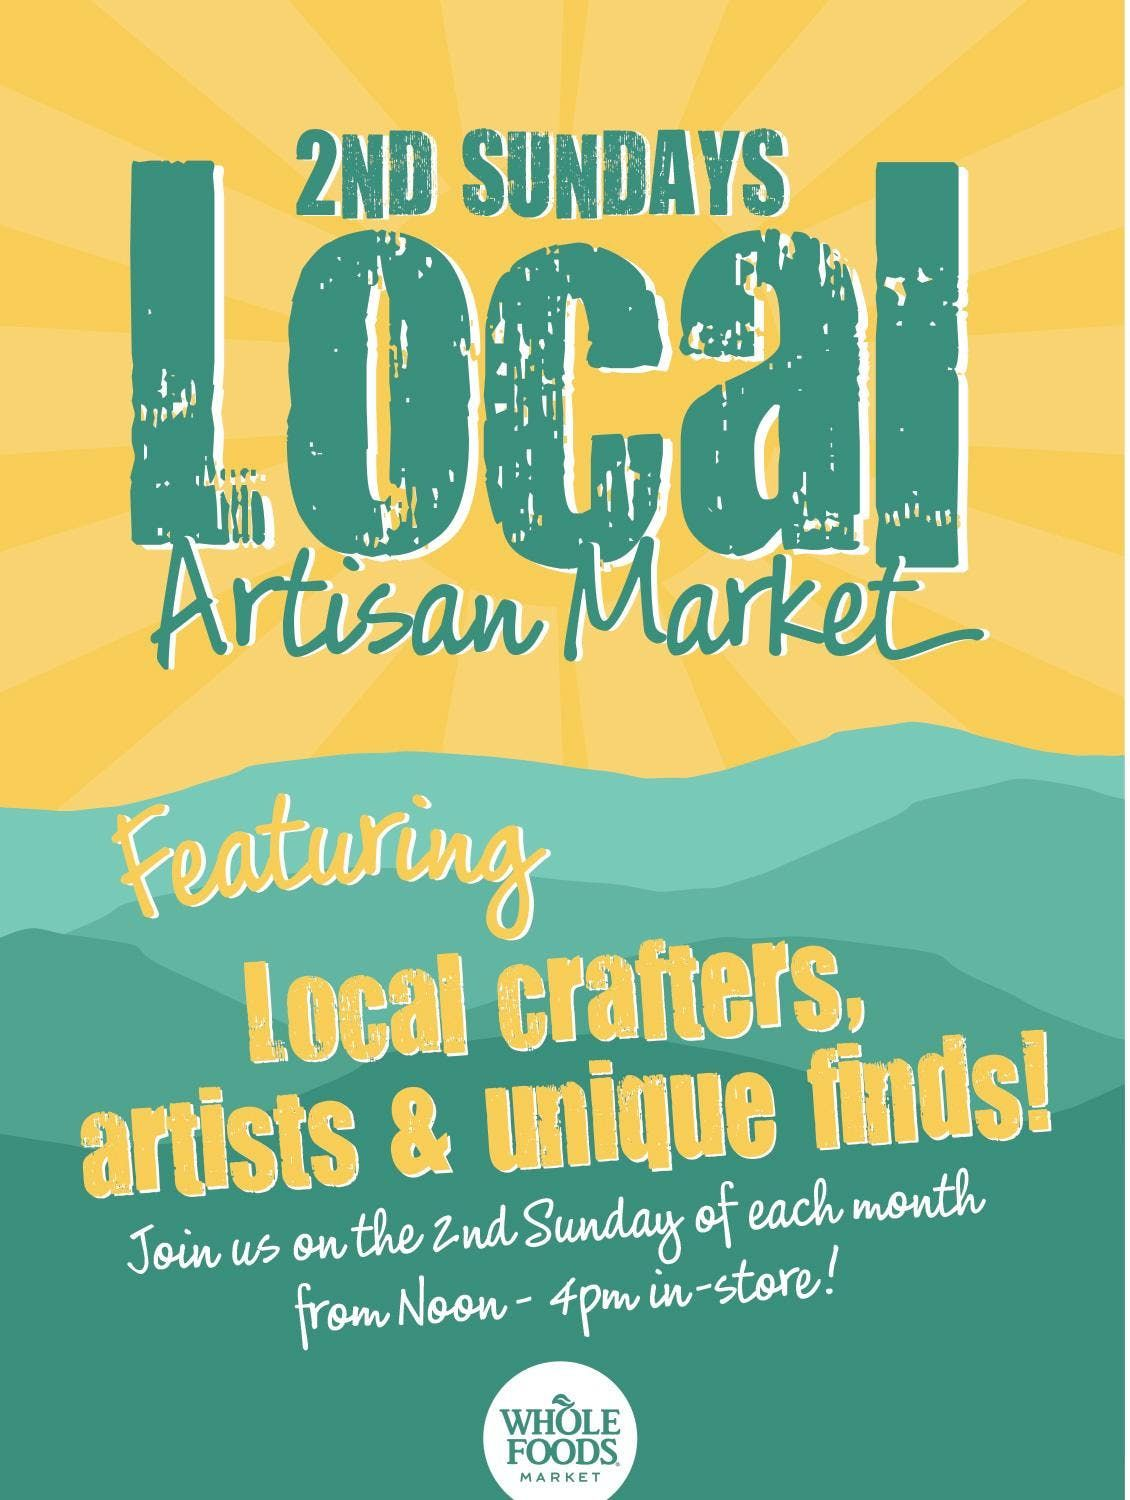 Second Sunday Artisan Market